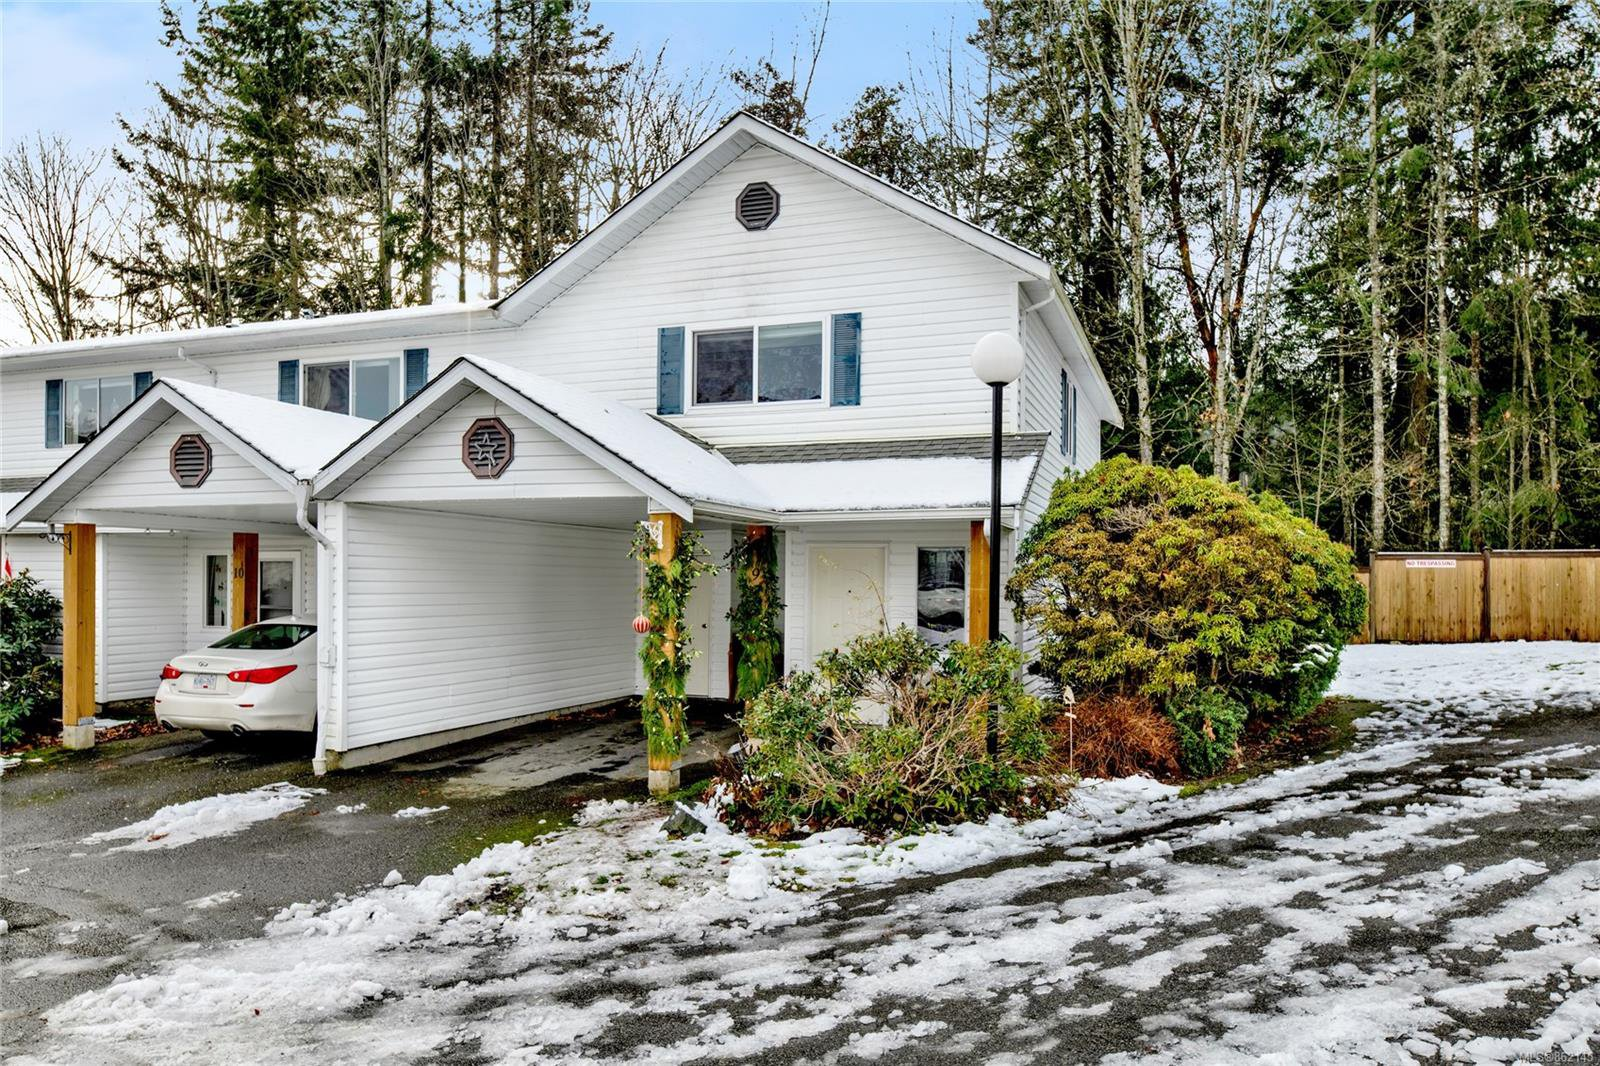 Main Photo: 9 711 Malone Rd in : Du Ladysmith Row/Townhouse for sale (Duncan)  : MLS®# 862145